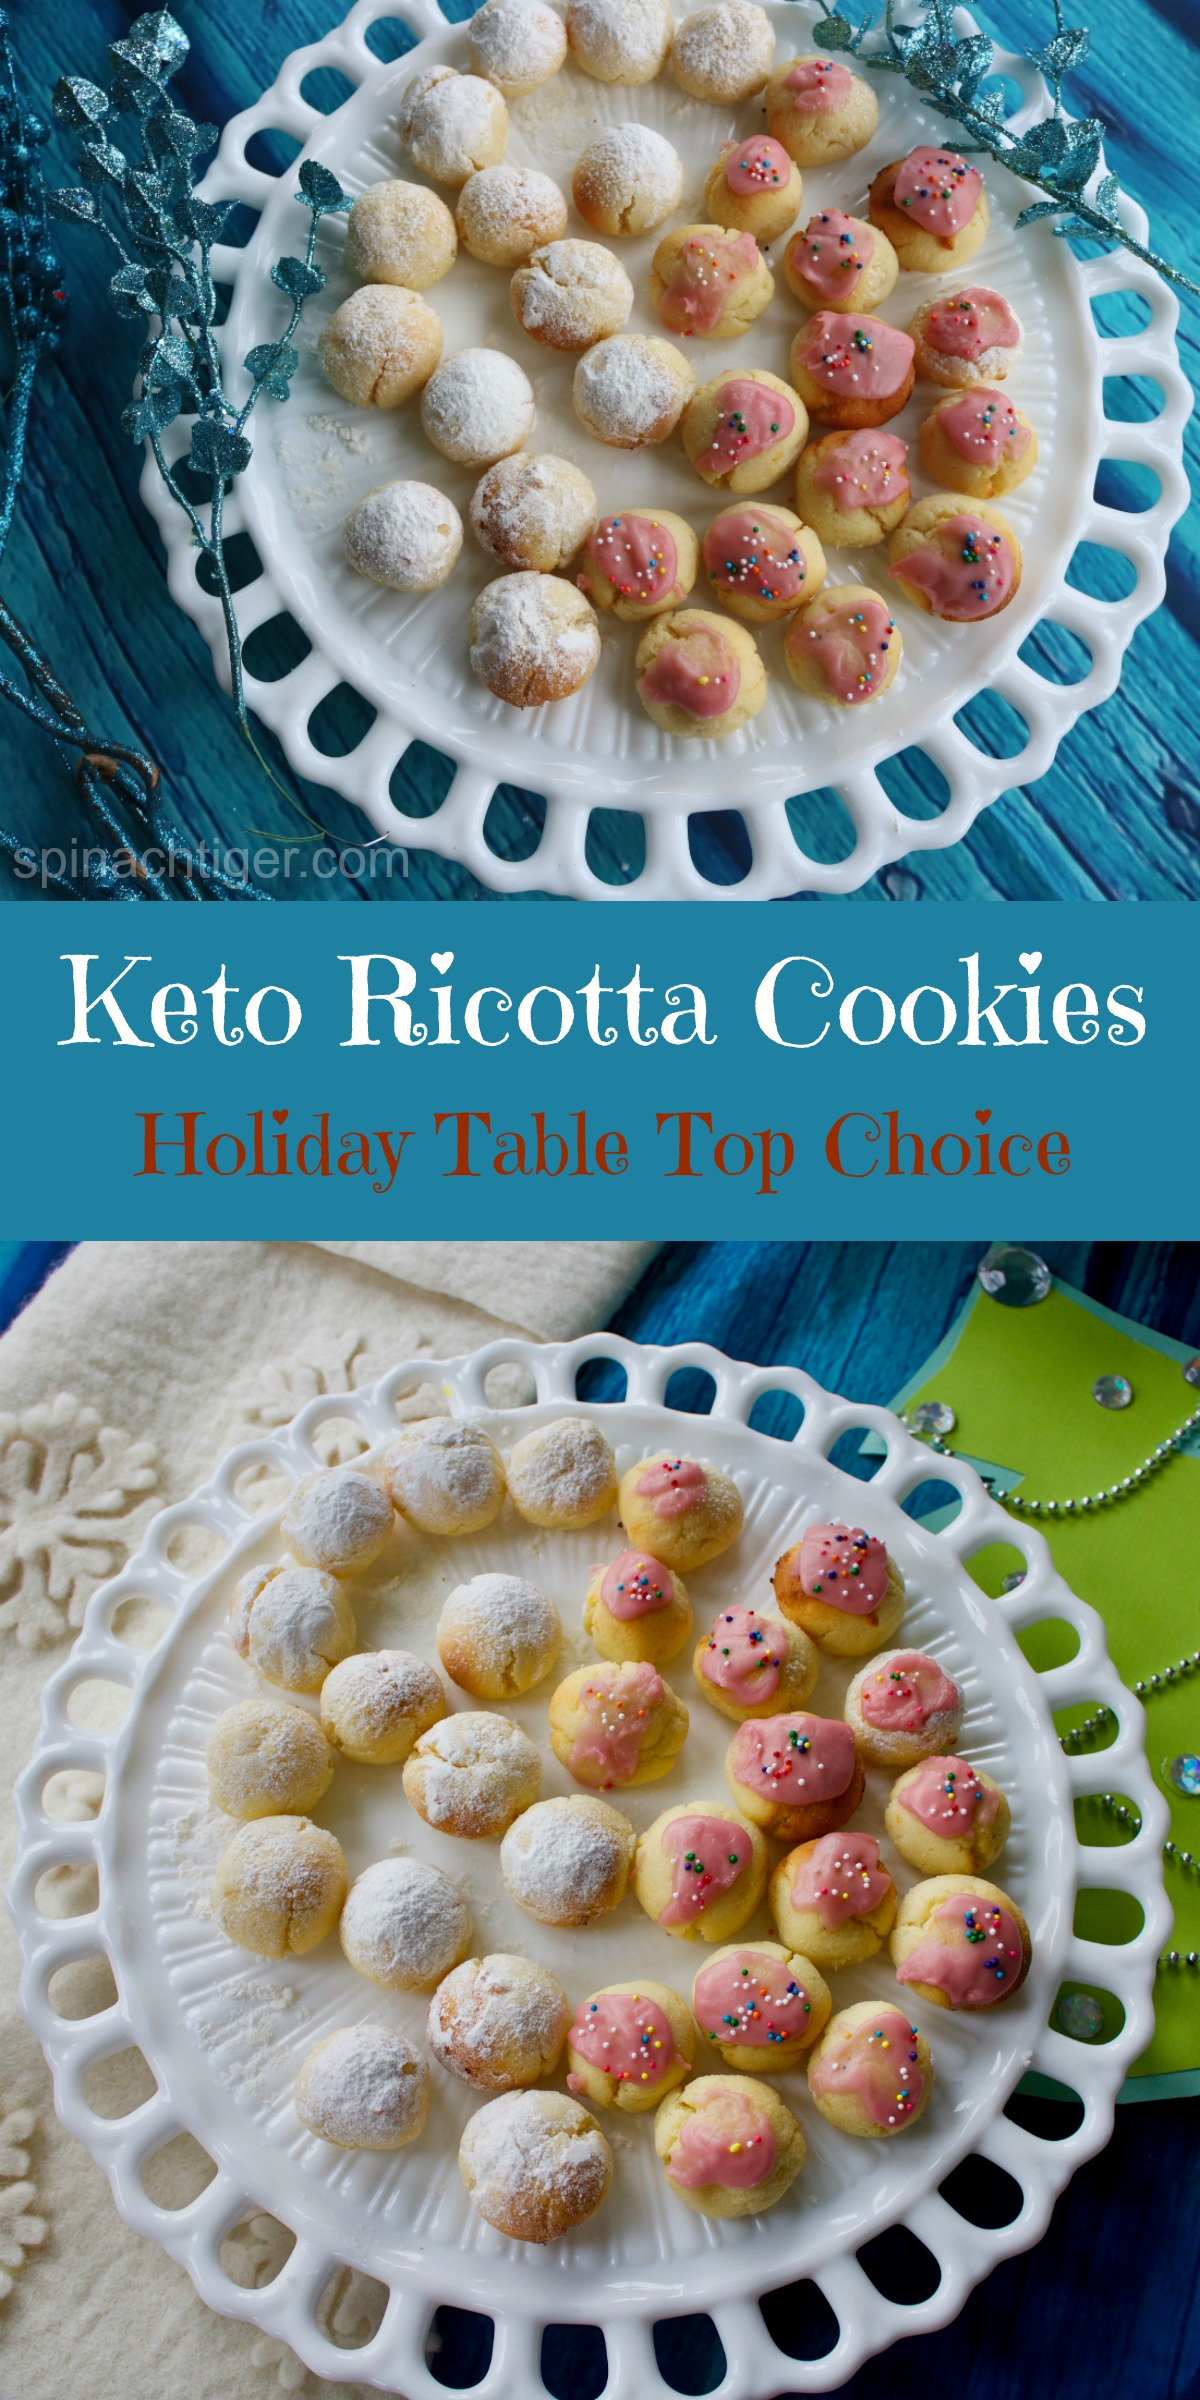 Best Low Carb Coconut Four Ricotta Cookies from Spinach Tiger (Keto, Paleo), Sugar Free Using Swerve